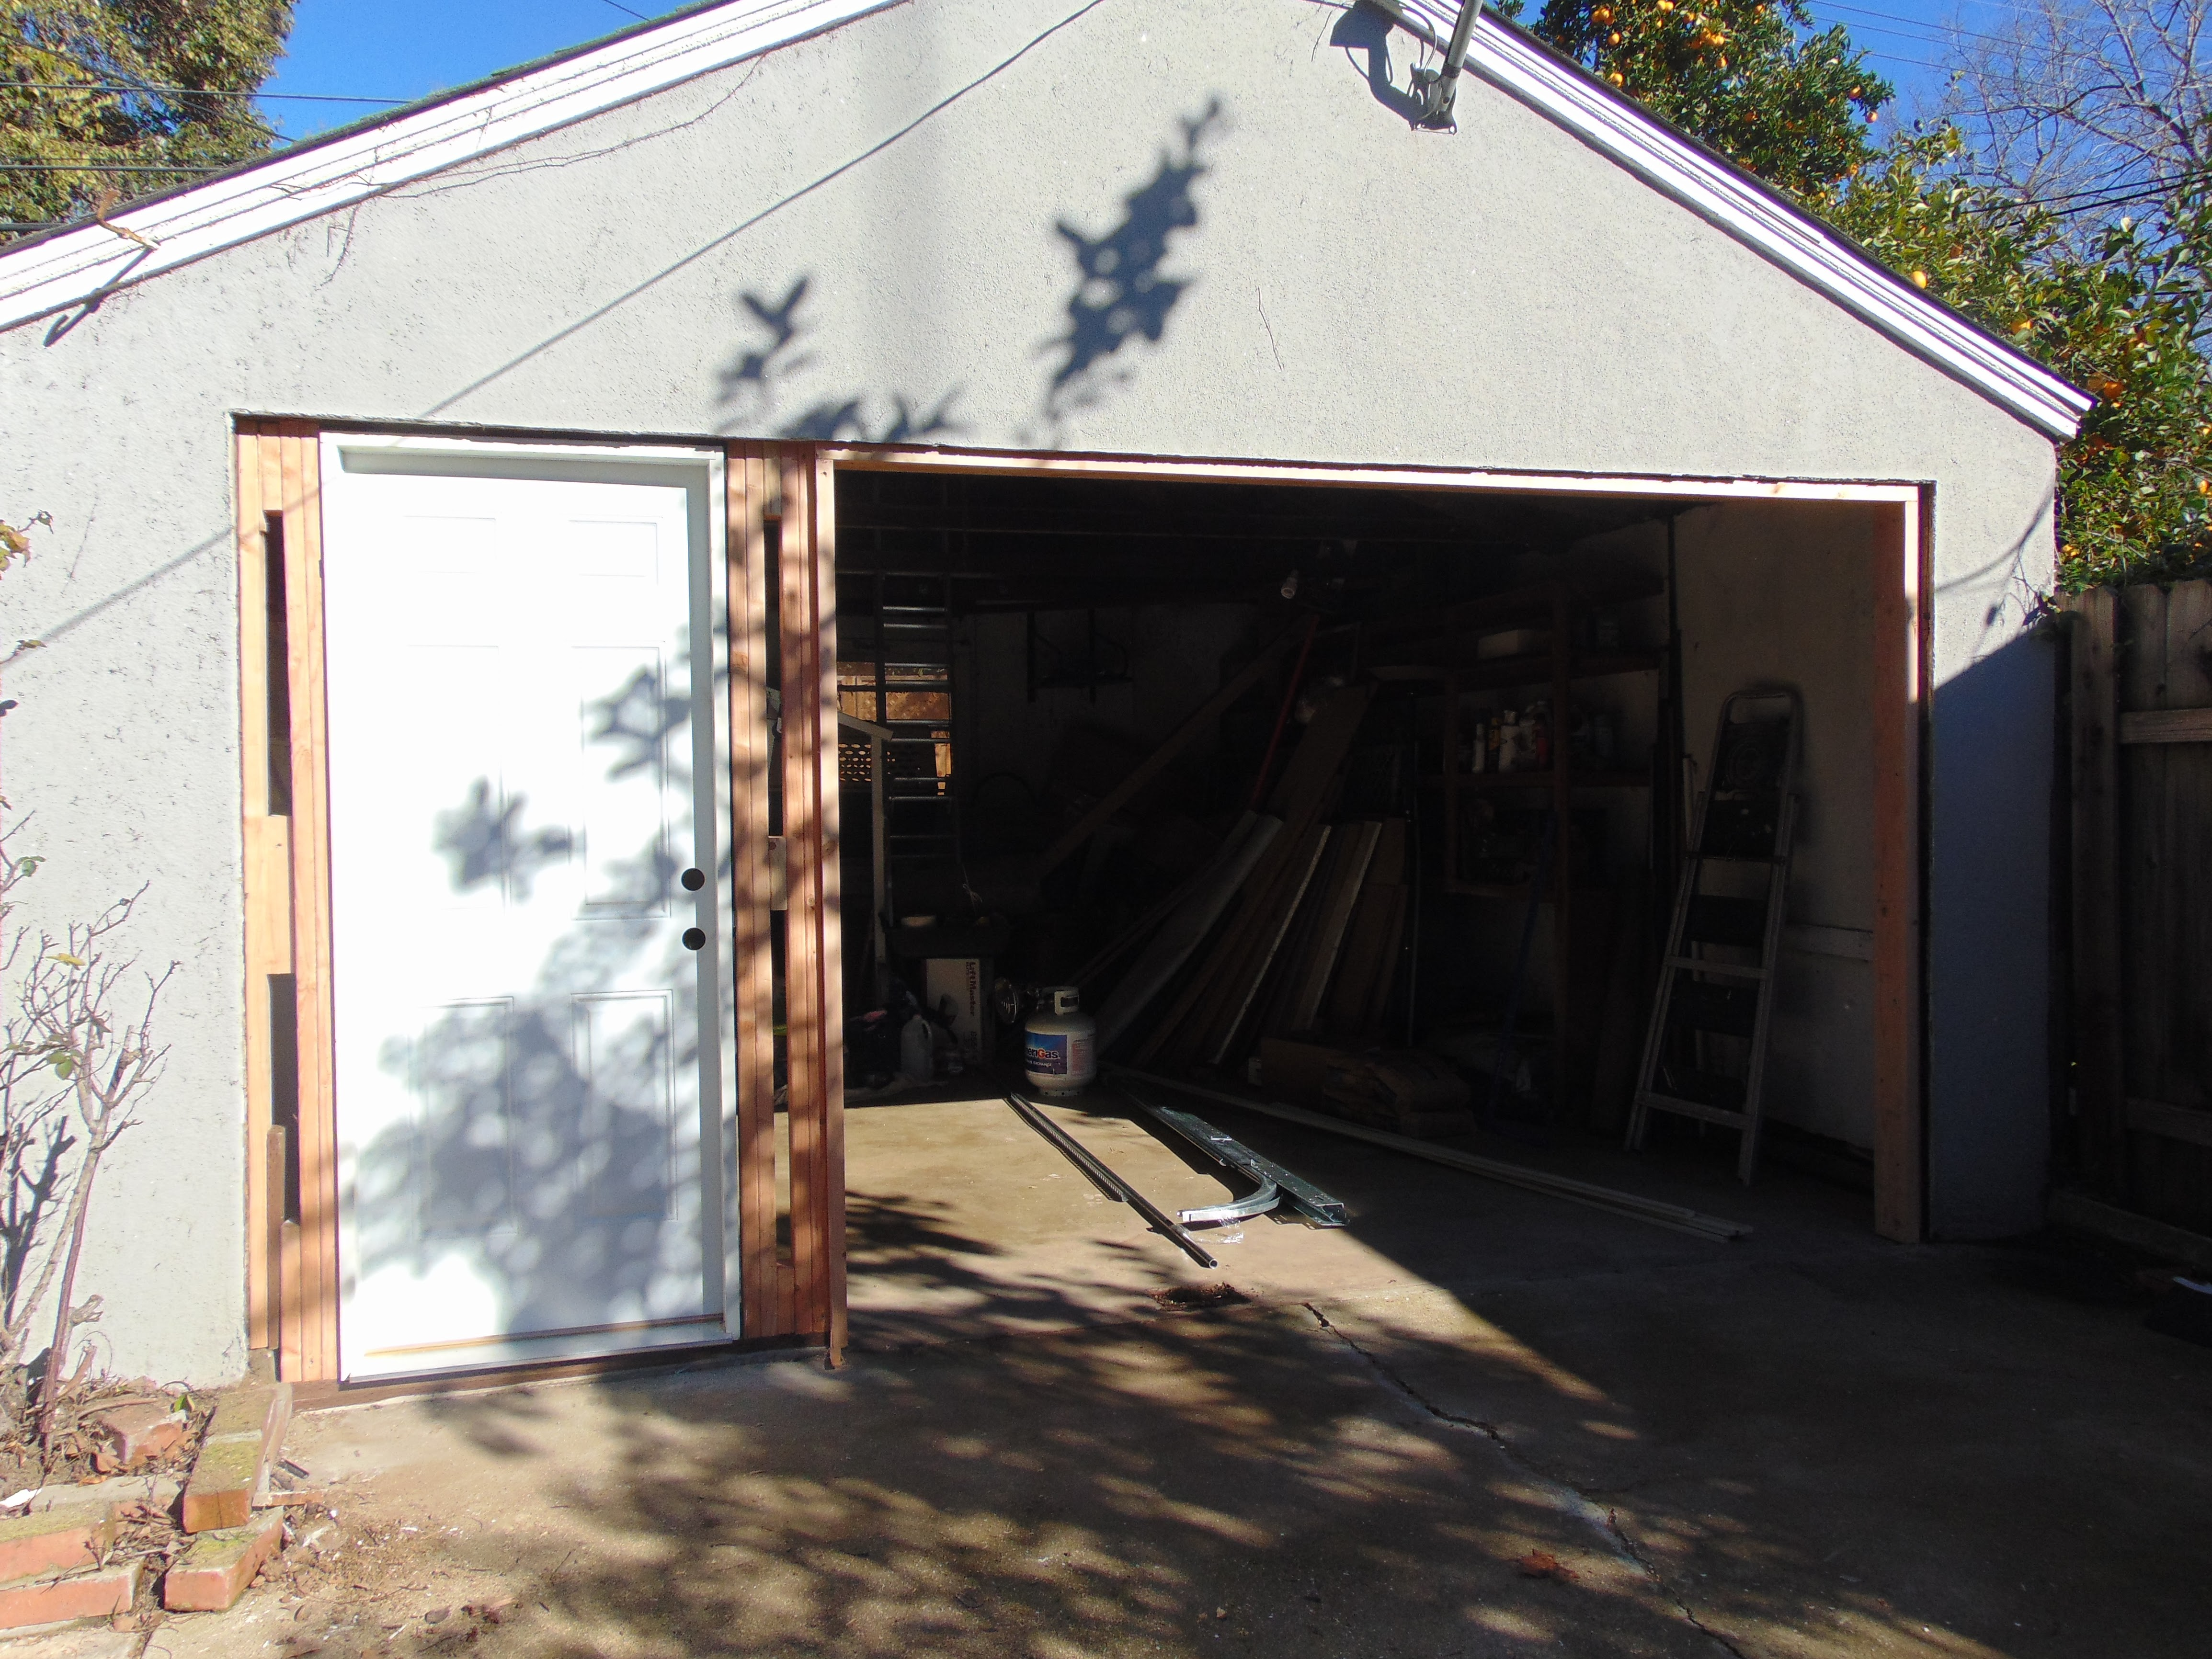 image door garage shed best style doors options storage with our for iimajackrussell sheds your roll up build own